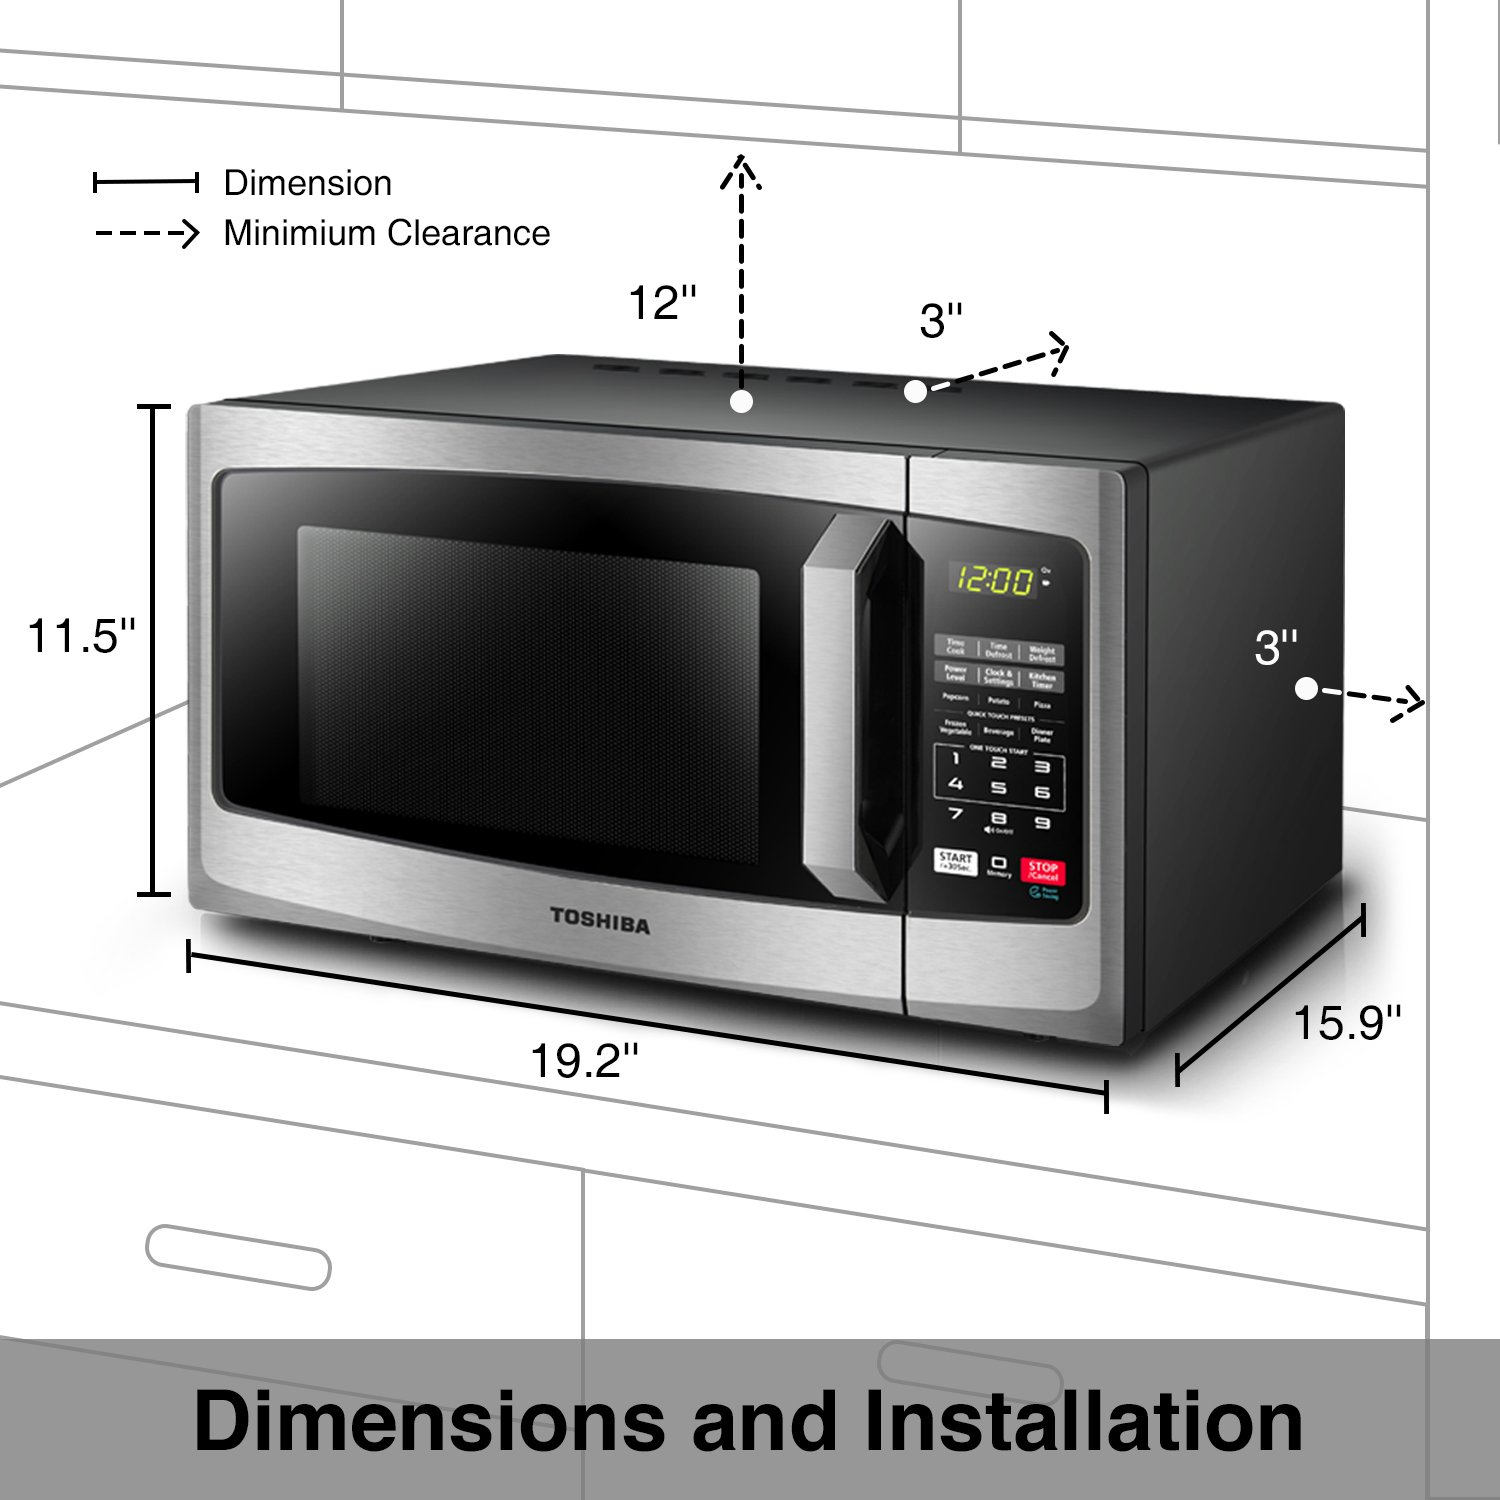 Toshiba EM925A5A-SS Microwave Oven with Sound On/Off ECO Mode and LED Lighting 0.9 cu. ft. Stainless Steel by Toshiba (Image #4)